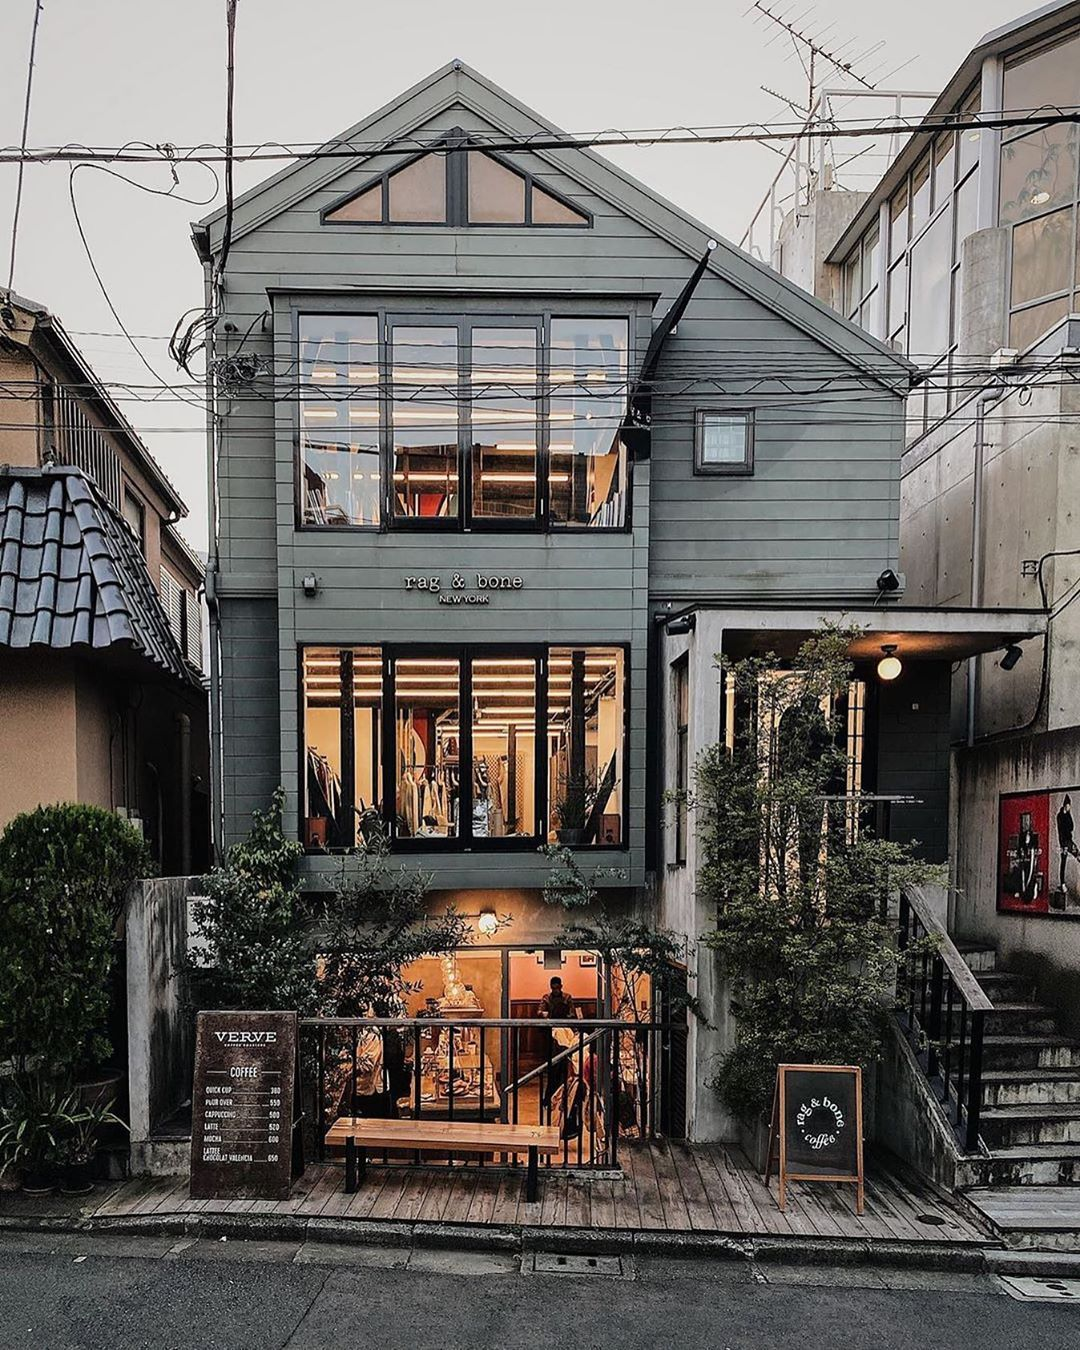 Coffee Shops Of The World On Instagram Danieltriassi At Ragandbonecoffee There S A Phenomenon In Tokyo In Which Ameri In 2020 Coffee Shop Secret Places Instagram